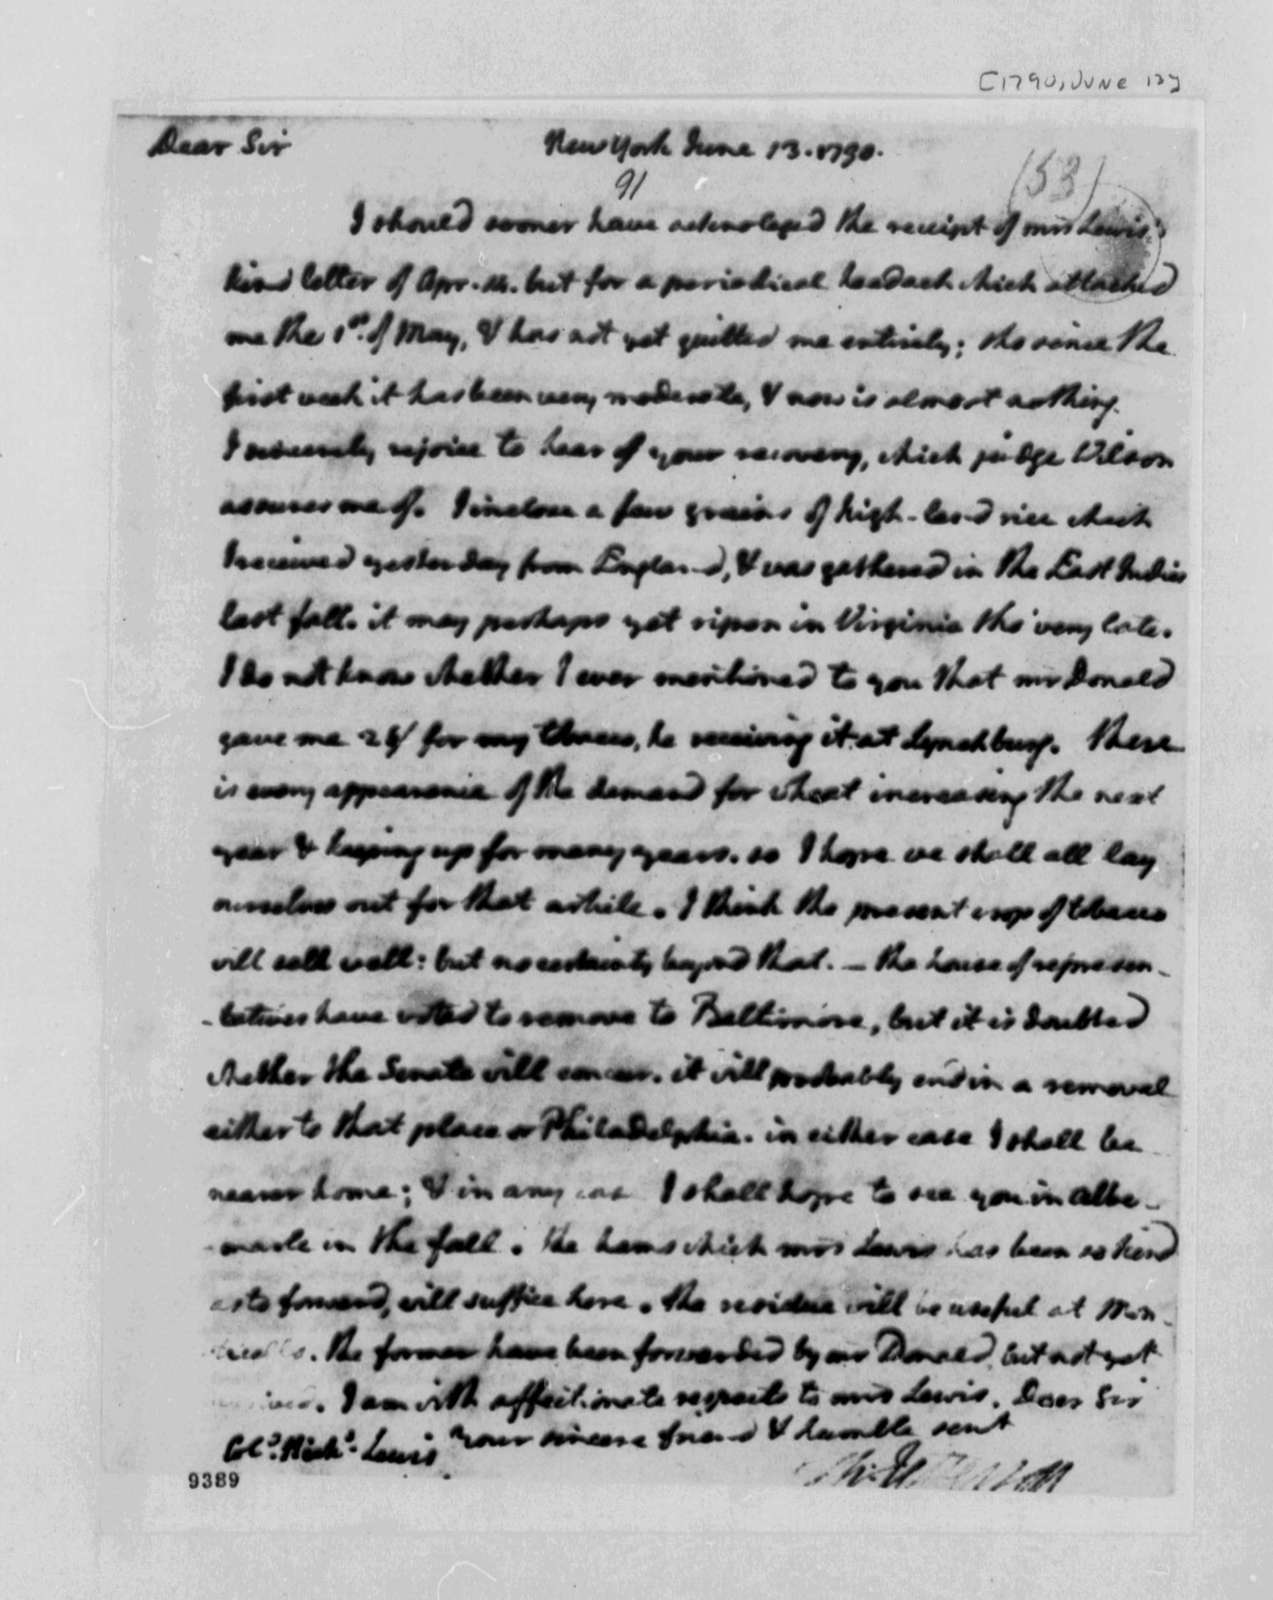 Thomas Jefferson to Nicholas Lewis, June 13, 1790